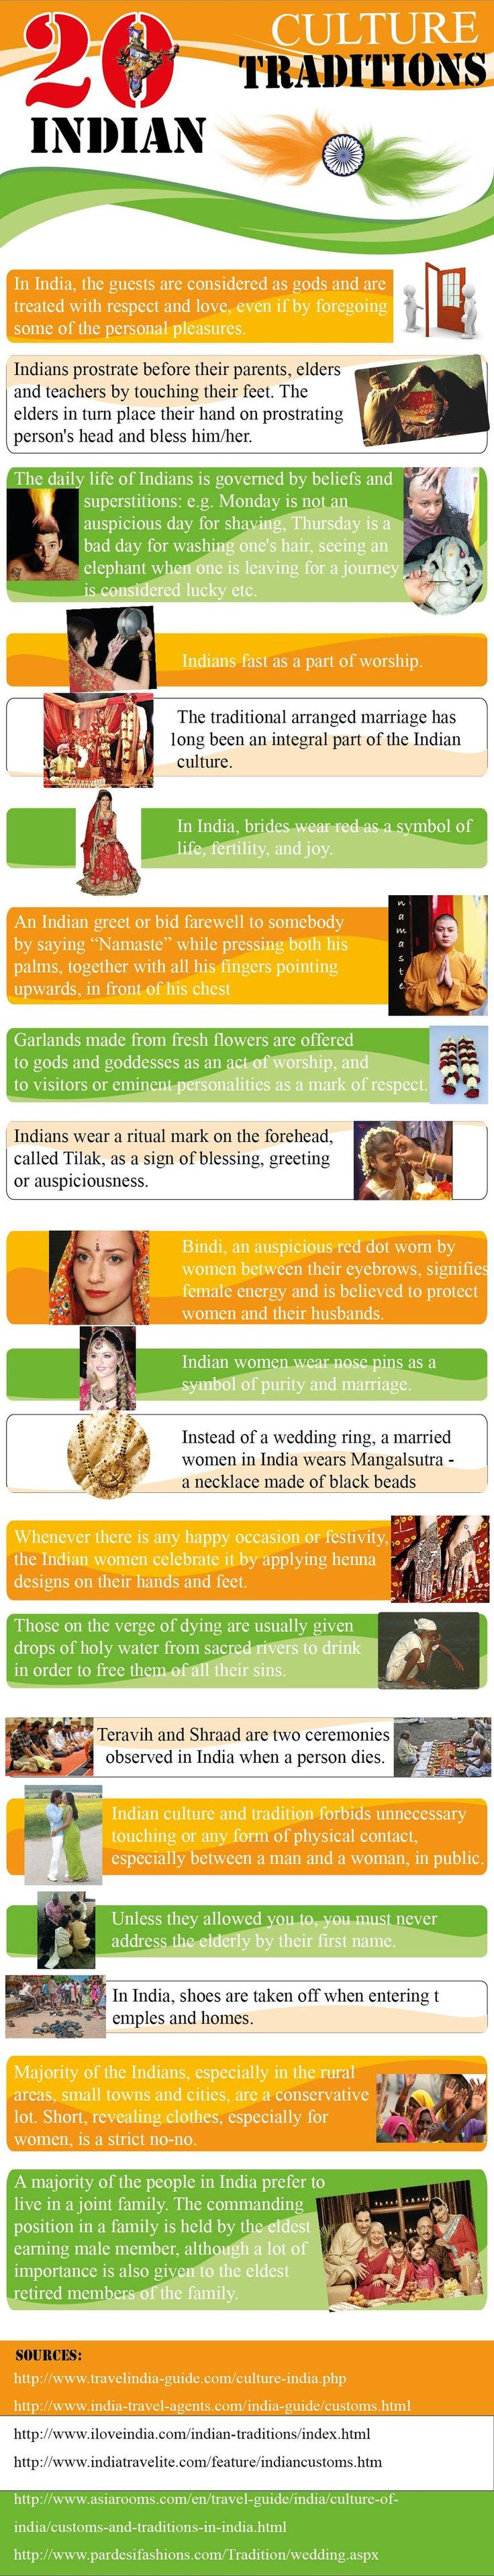 20 facts about Indian culture